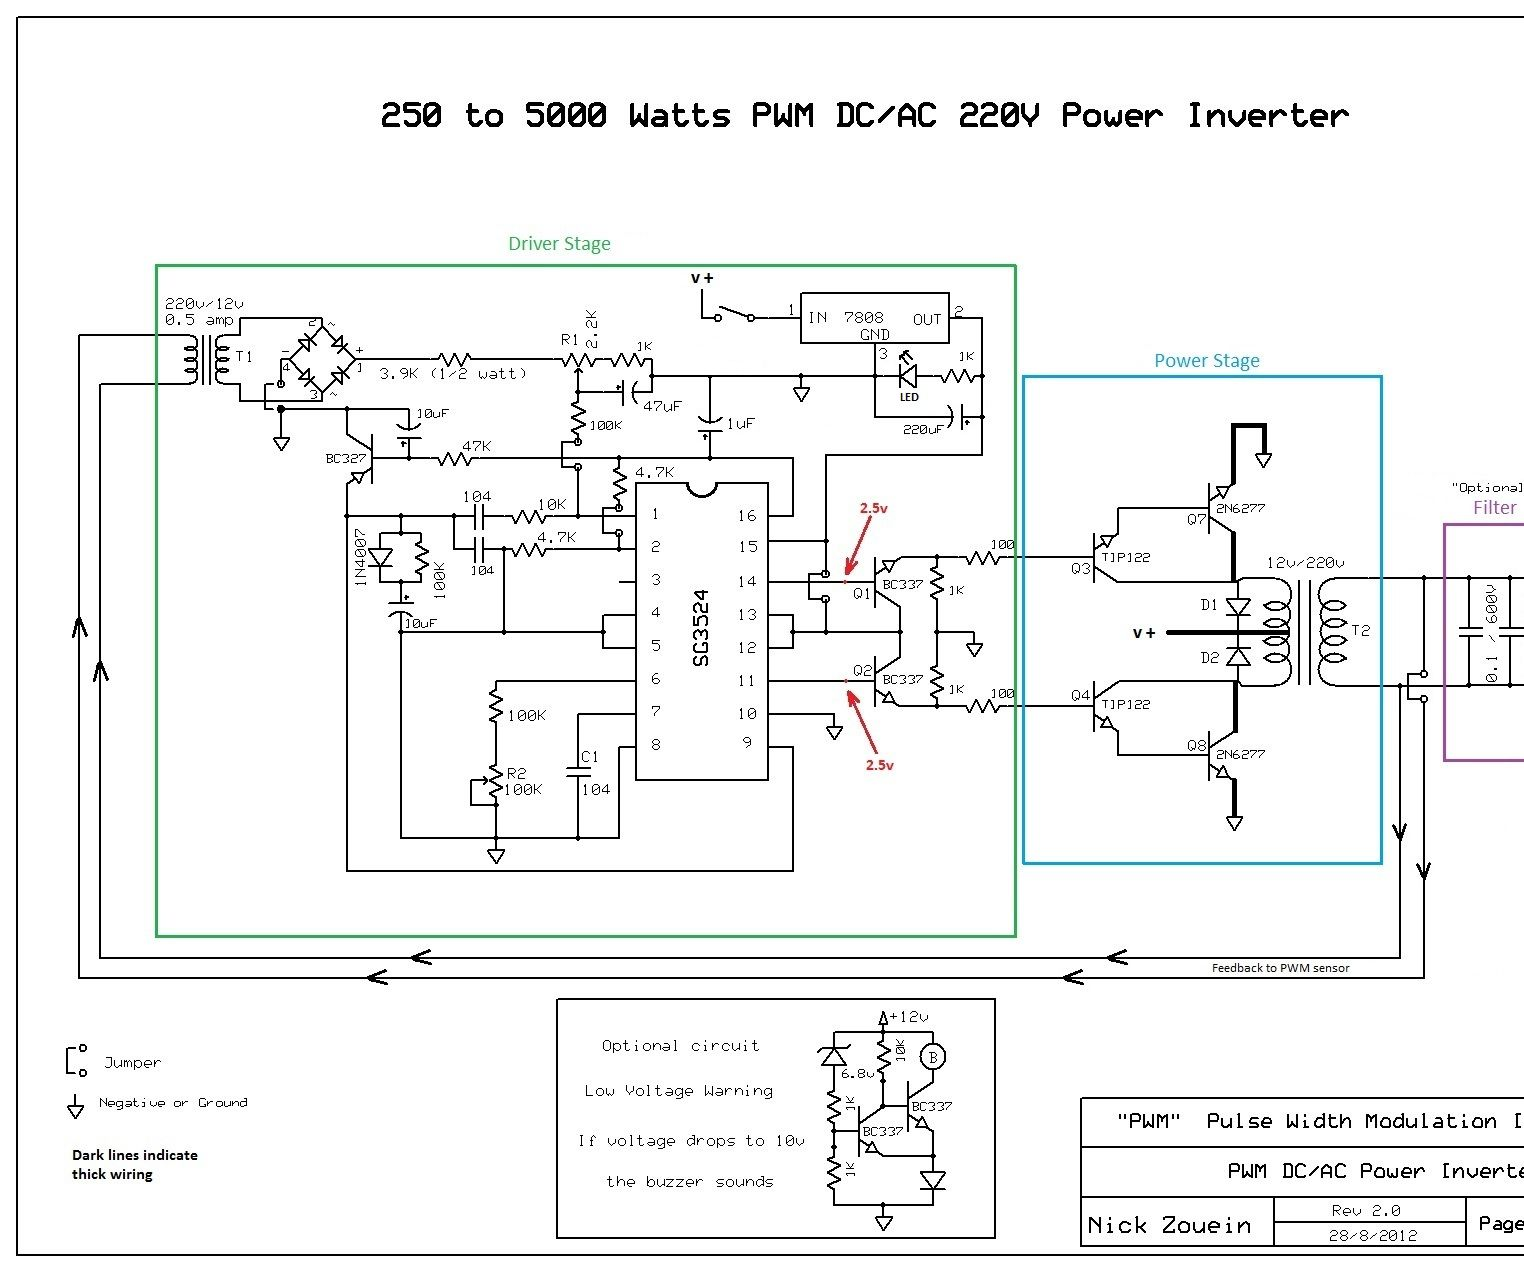 hight resolution of gmc c5500 fuse box diagram wiring library250 to 5000 watts pwm dc ac 220v power inverter